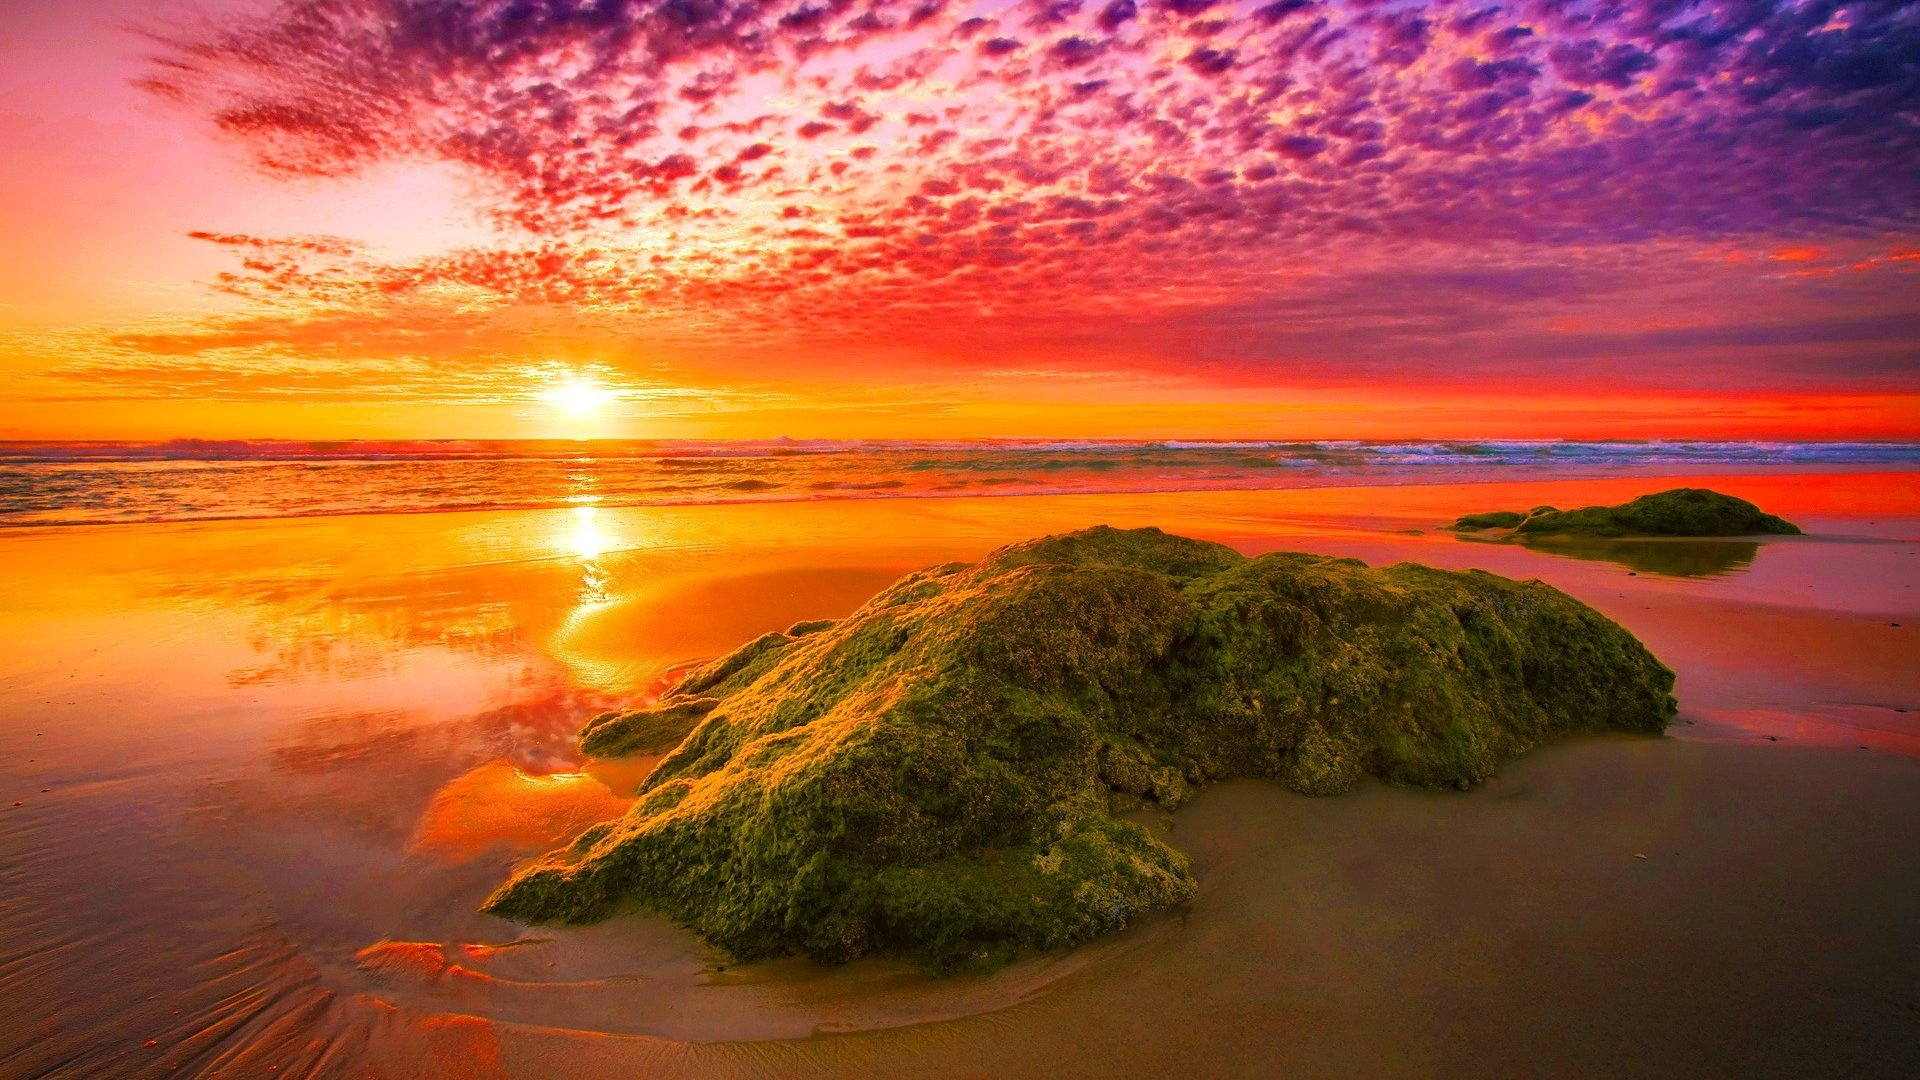 1920x1080 Sunset - Amazing Sunset Light Sunlight Fiery Sea Rocks Sky Nice Sand Nature  Reflection Lovely Beautiful